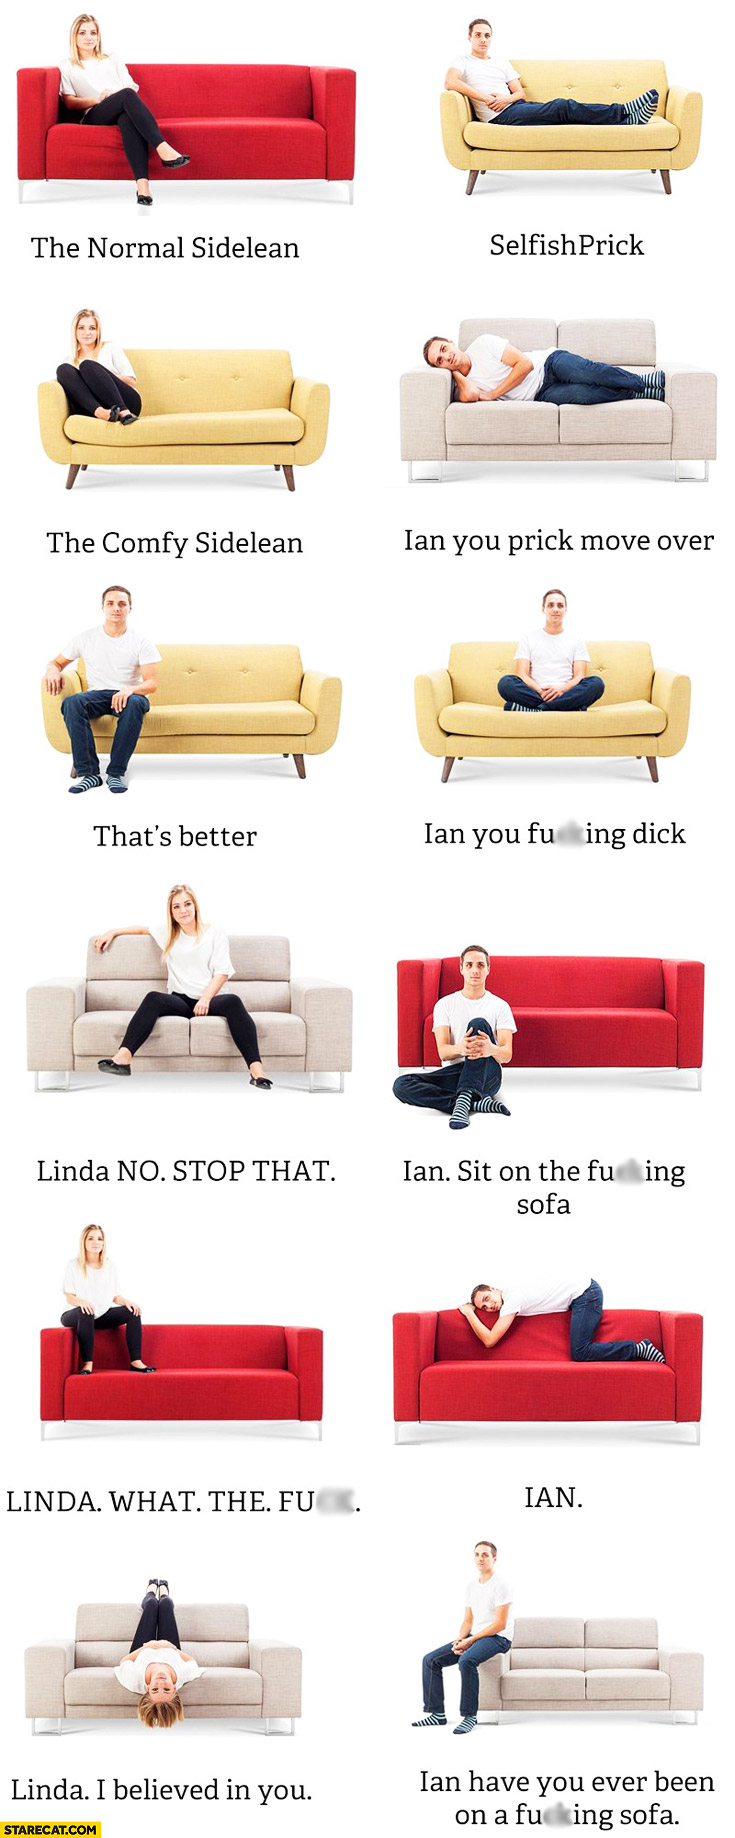 Sitting on a sofa positions Linda Ian trolling